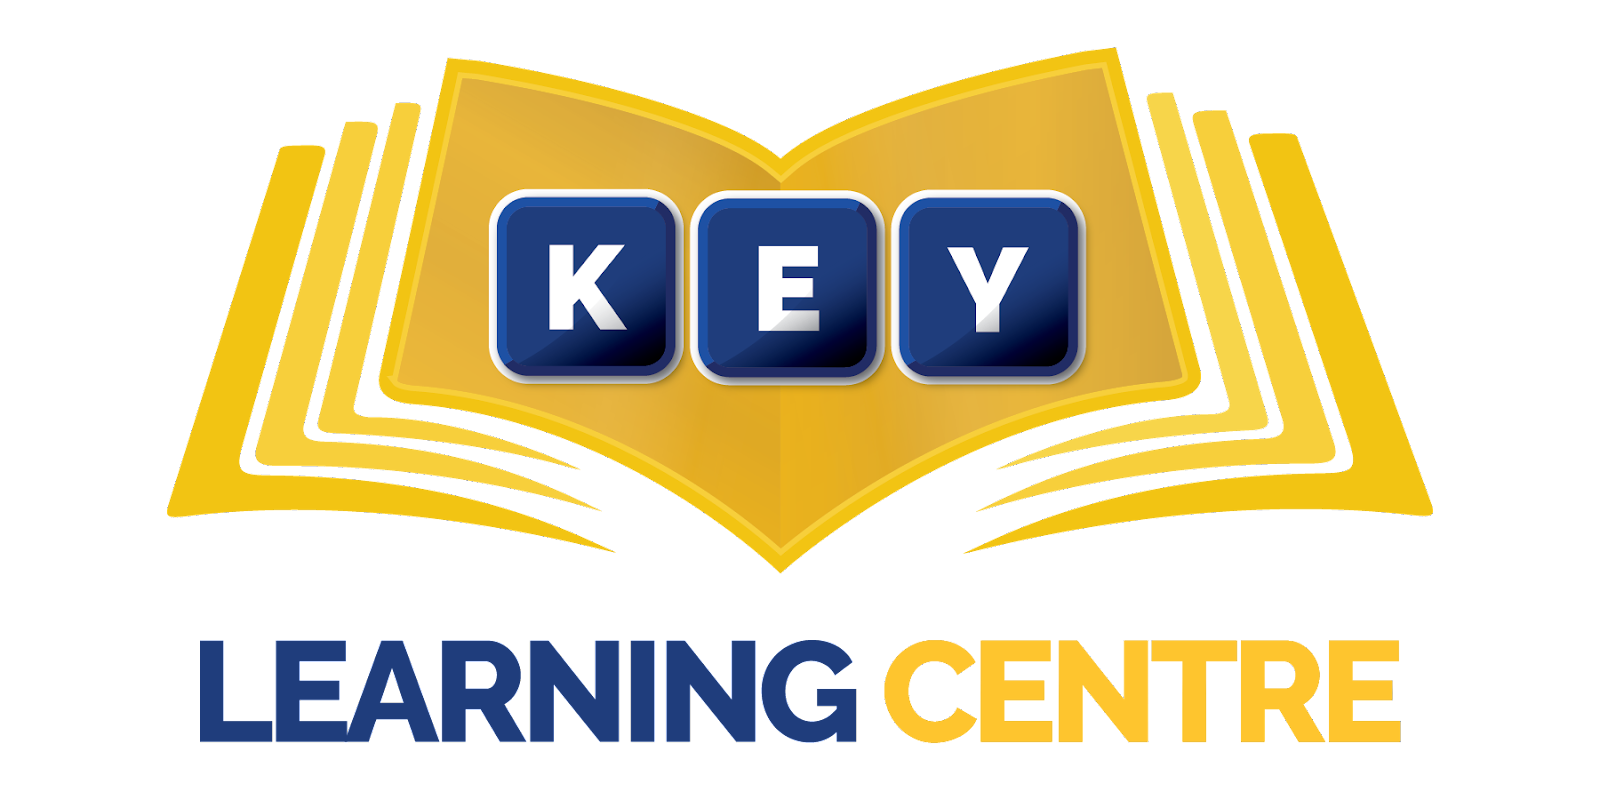 key-learning-2017-CMYK-color-01.png